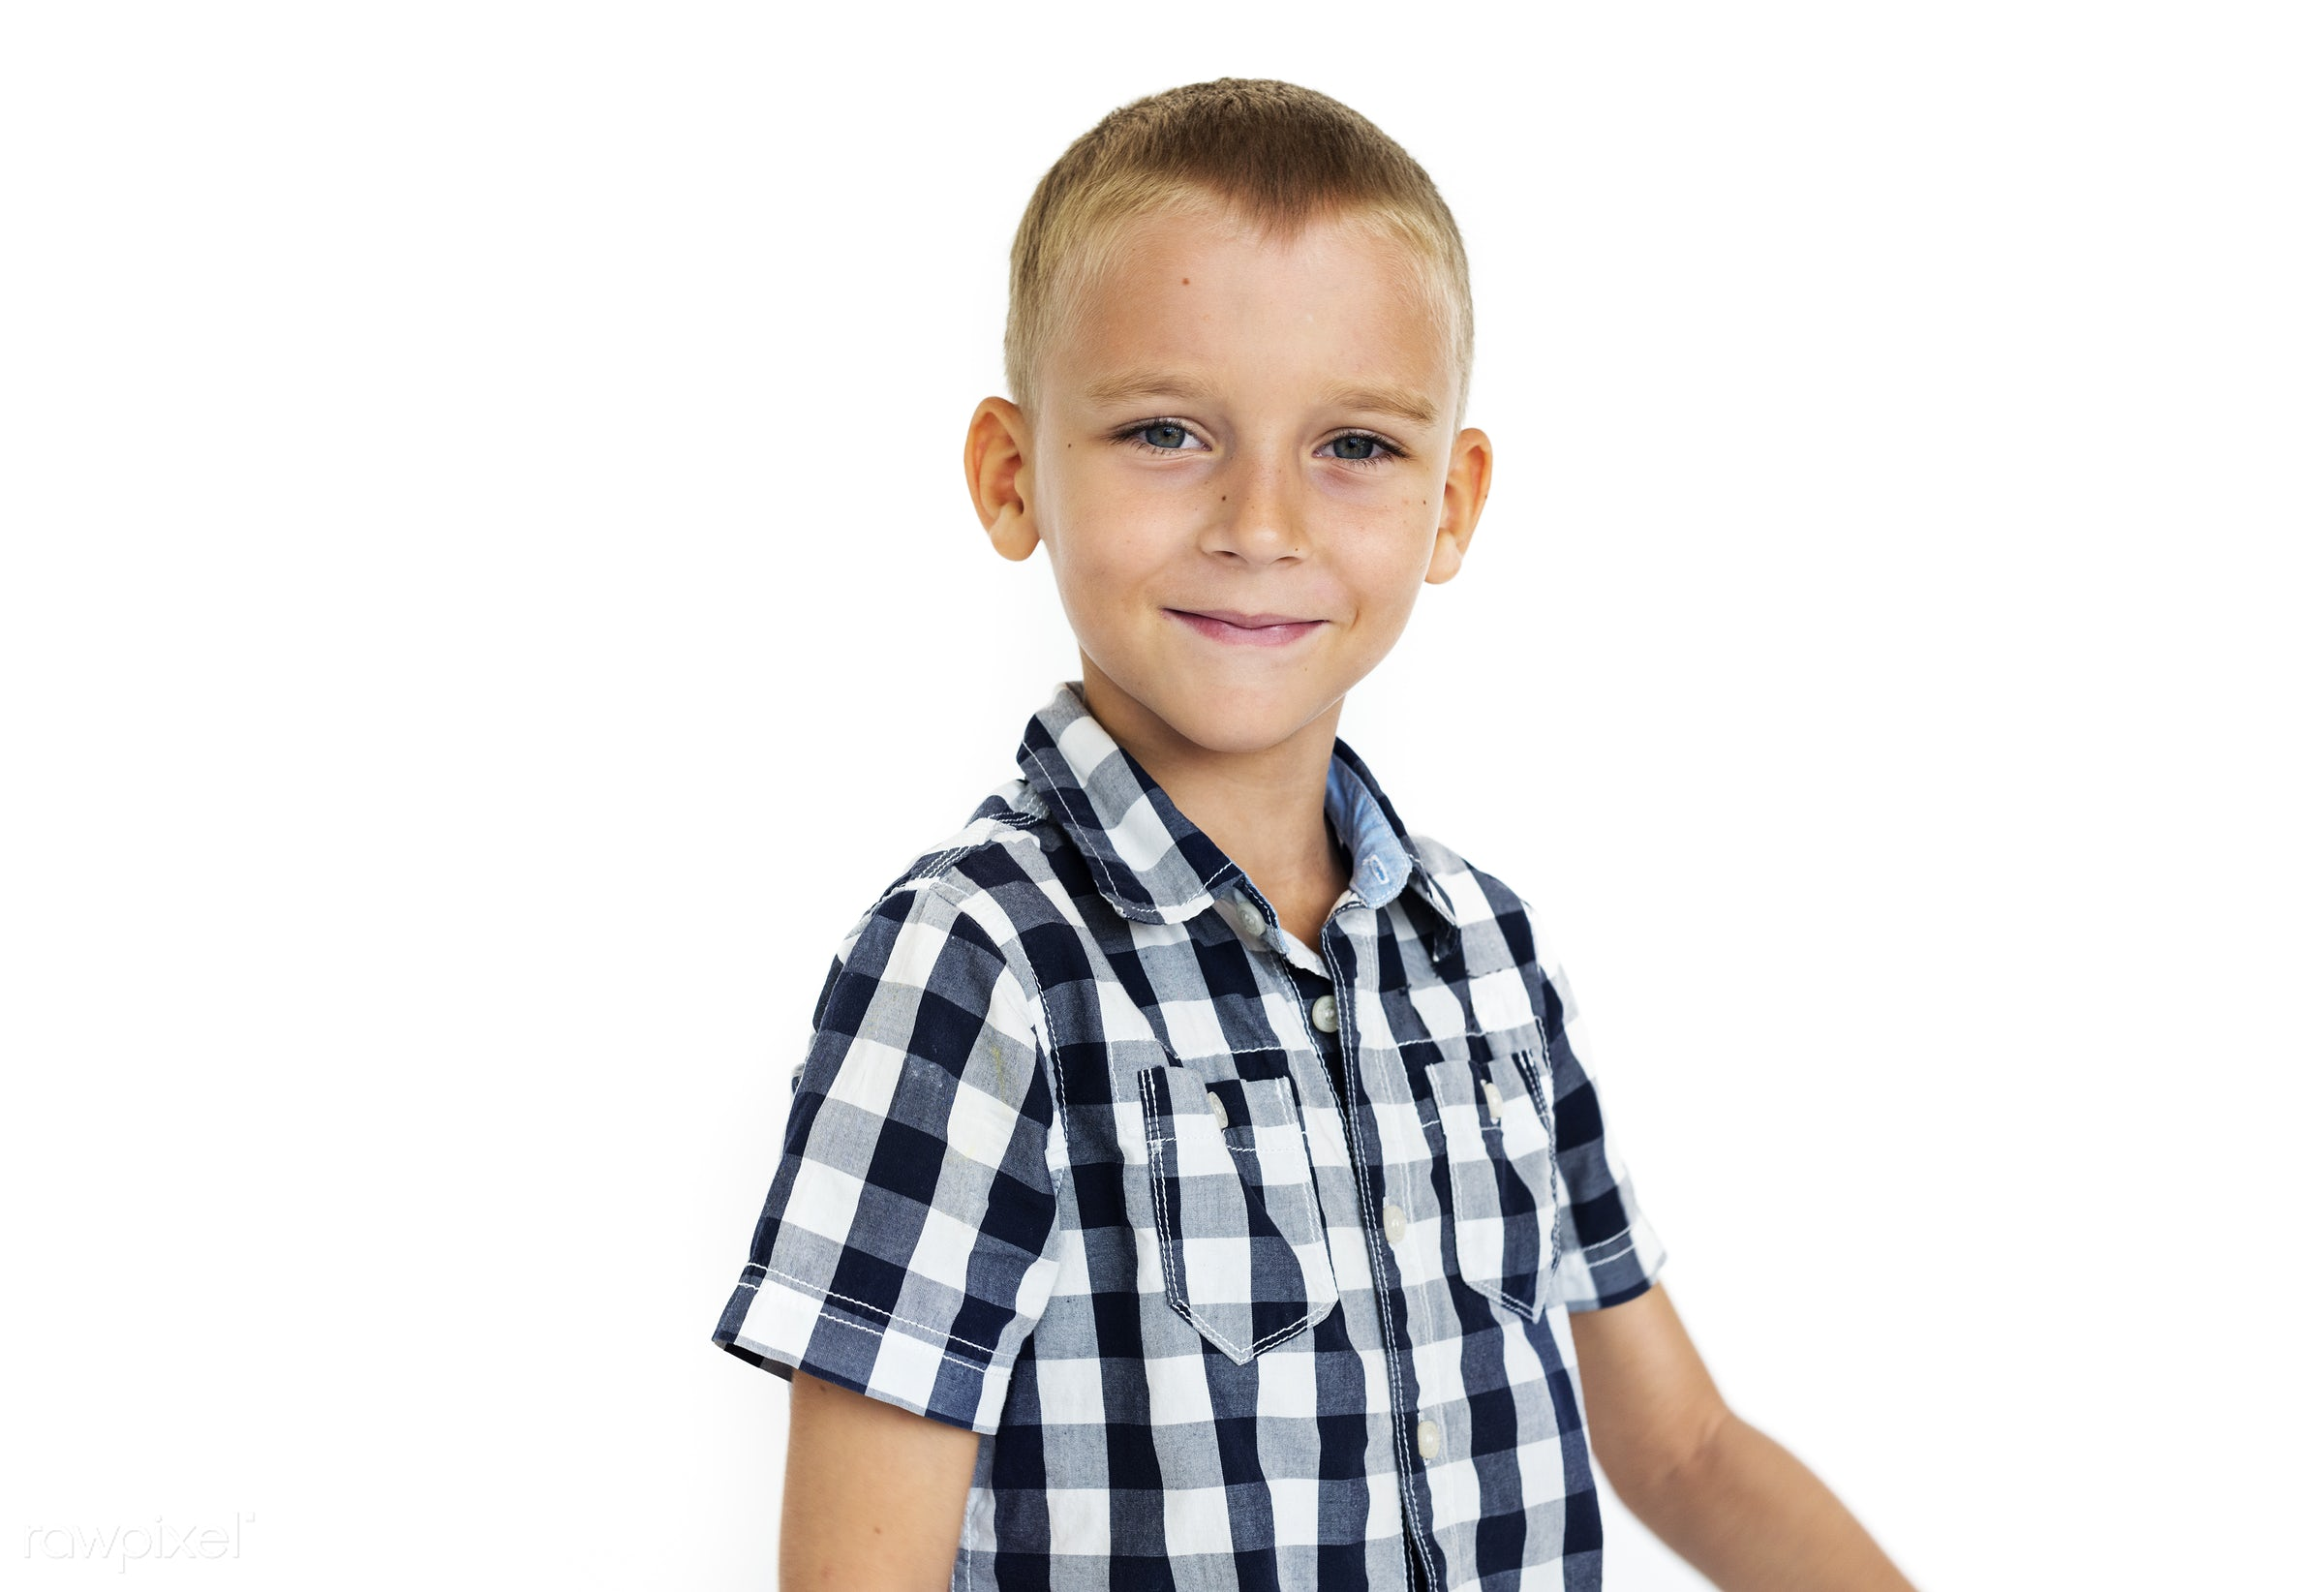 expression, studio, person, isolated on white, little, people, kid, child, casual, serious, man, isolated, guy, male, white...